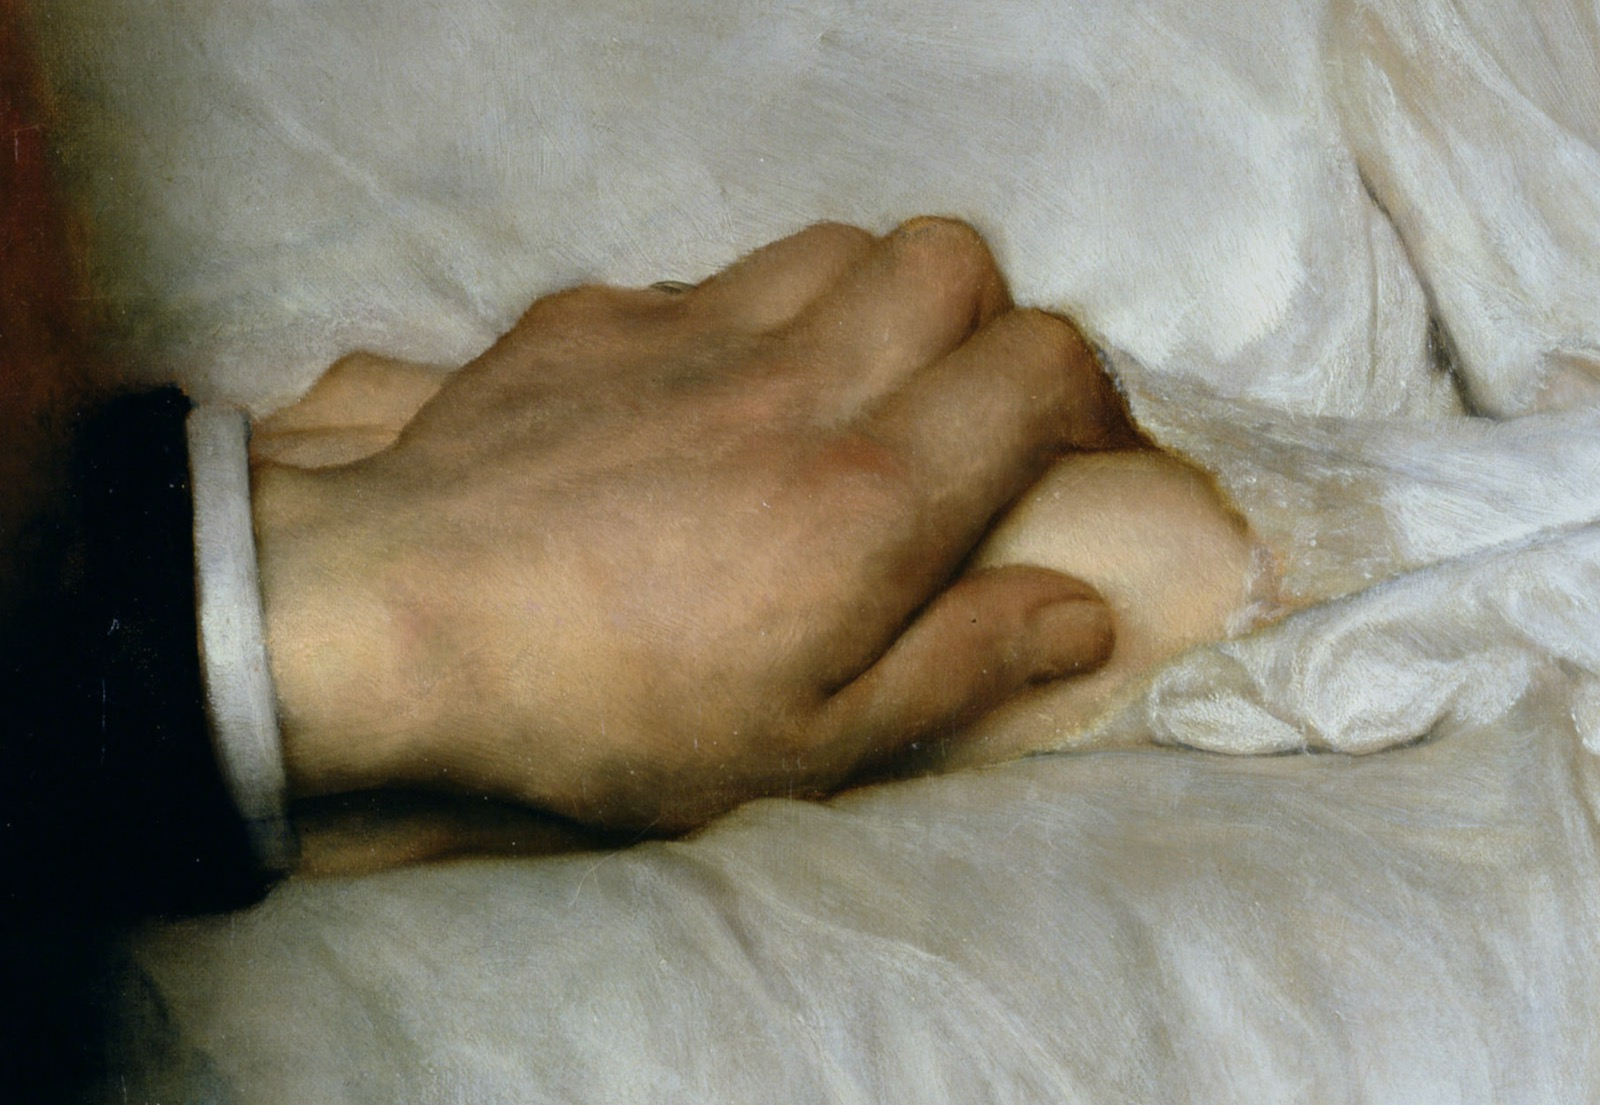 Detail from Lawrence Alma-Tadema's Portrait of Dr. Washington Epps, My Doctor, 1885